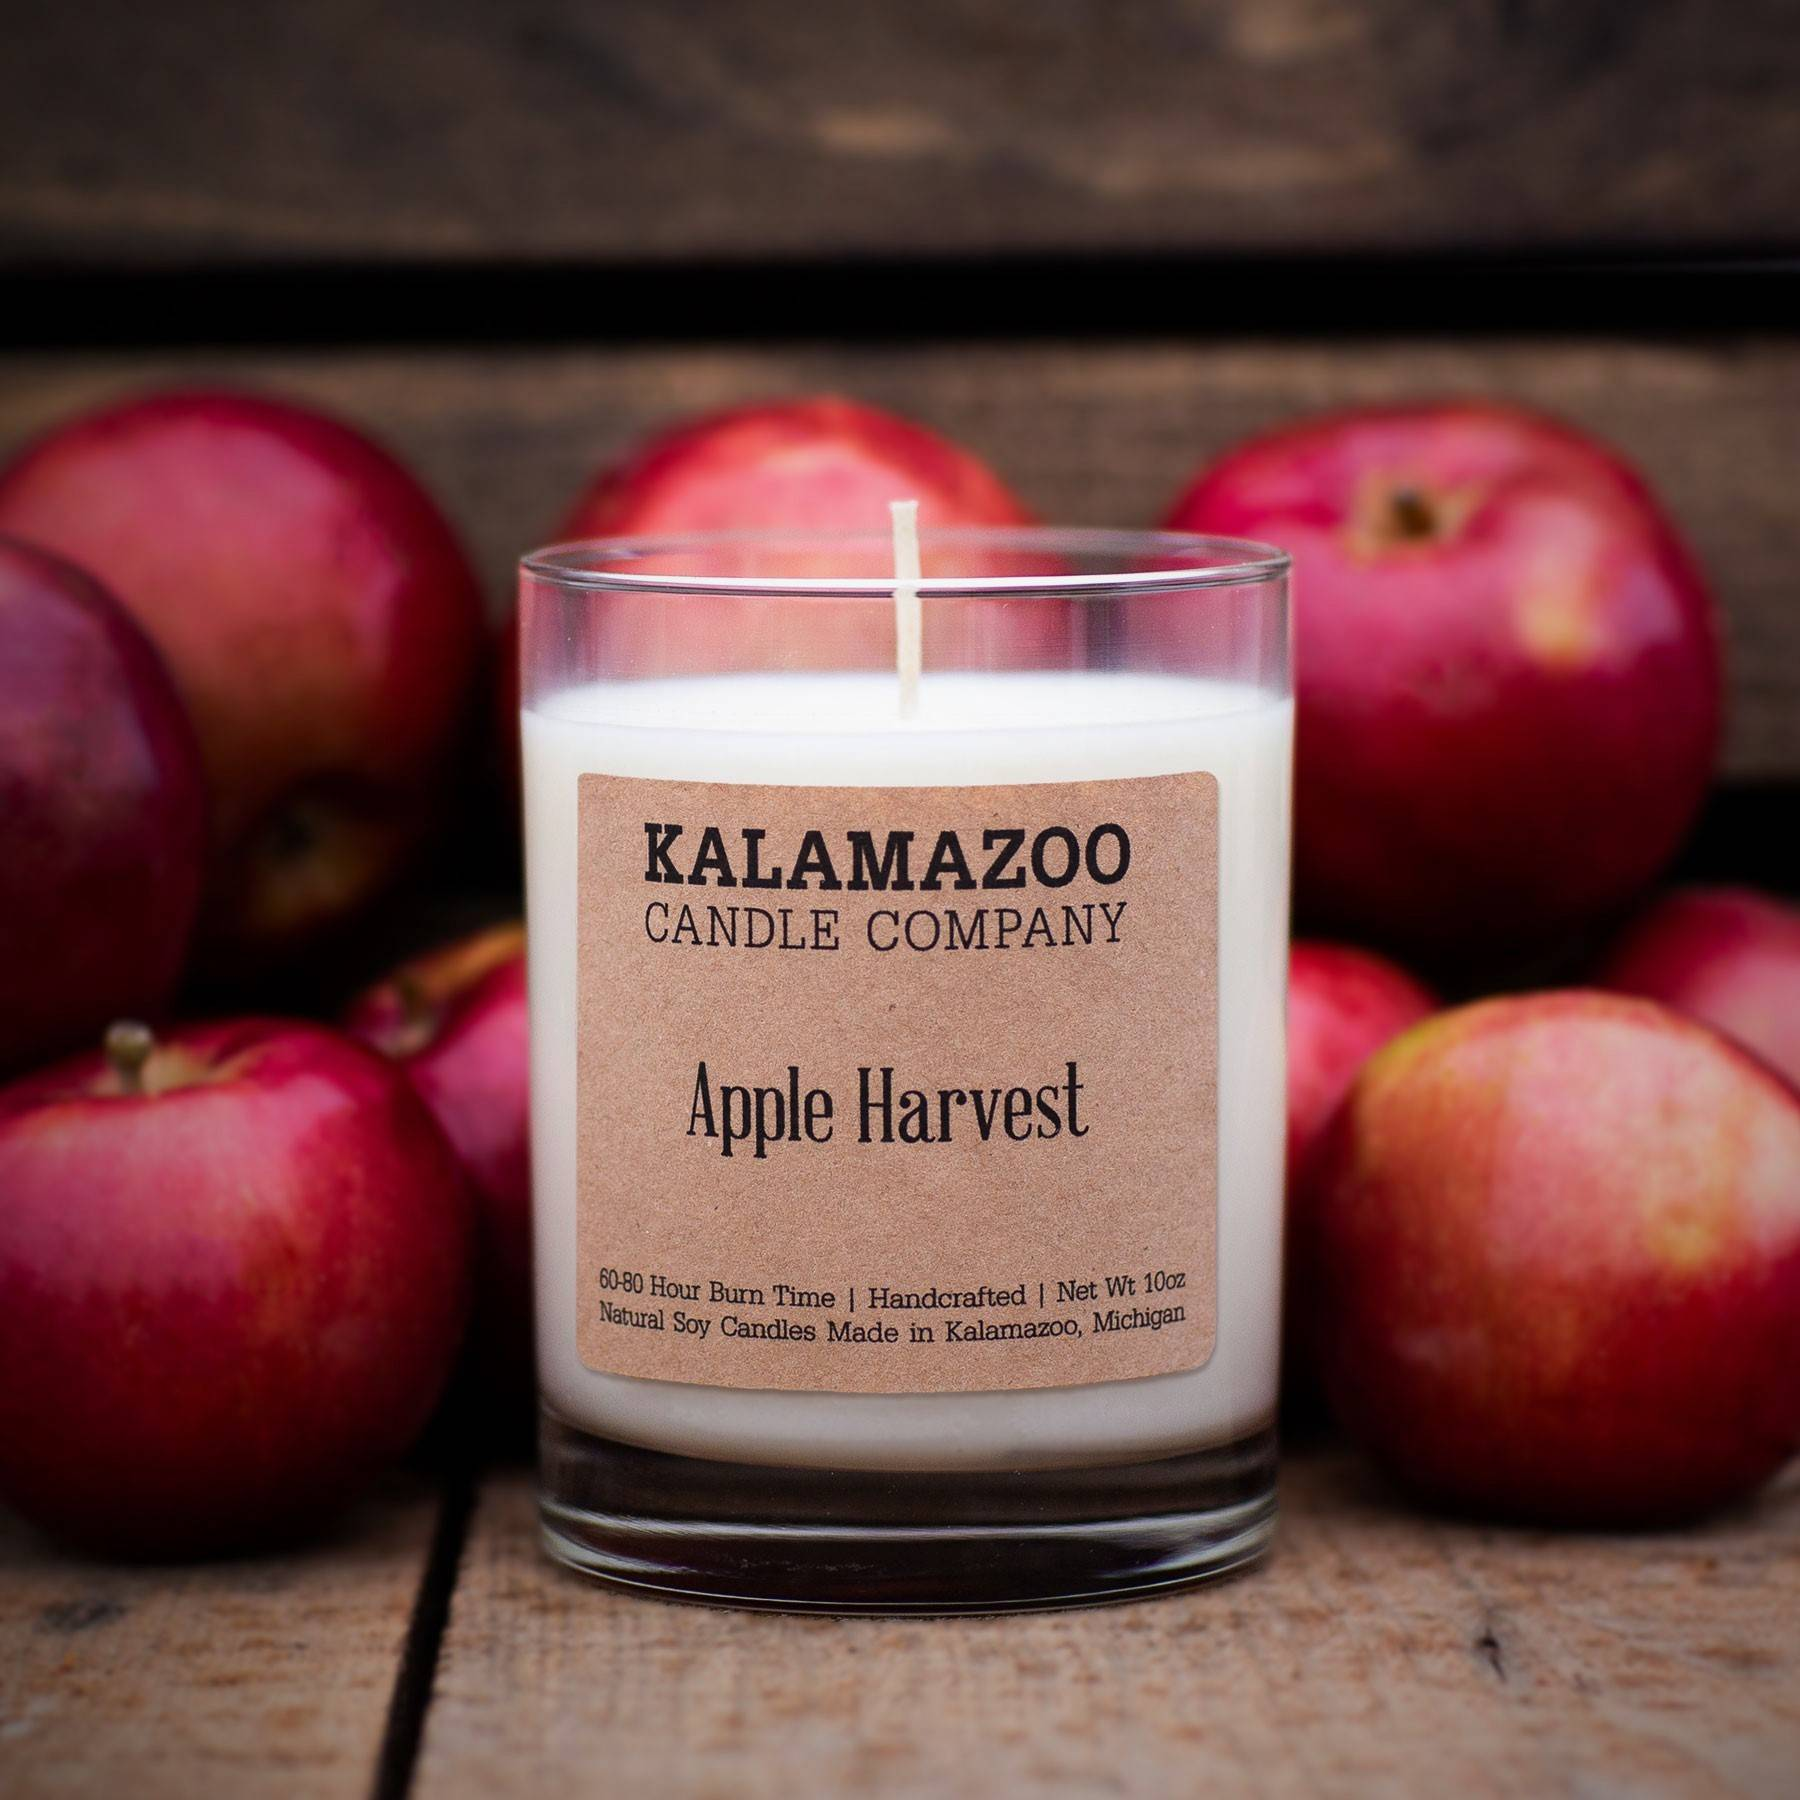 Apple Harvest natural soy wax scented candle